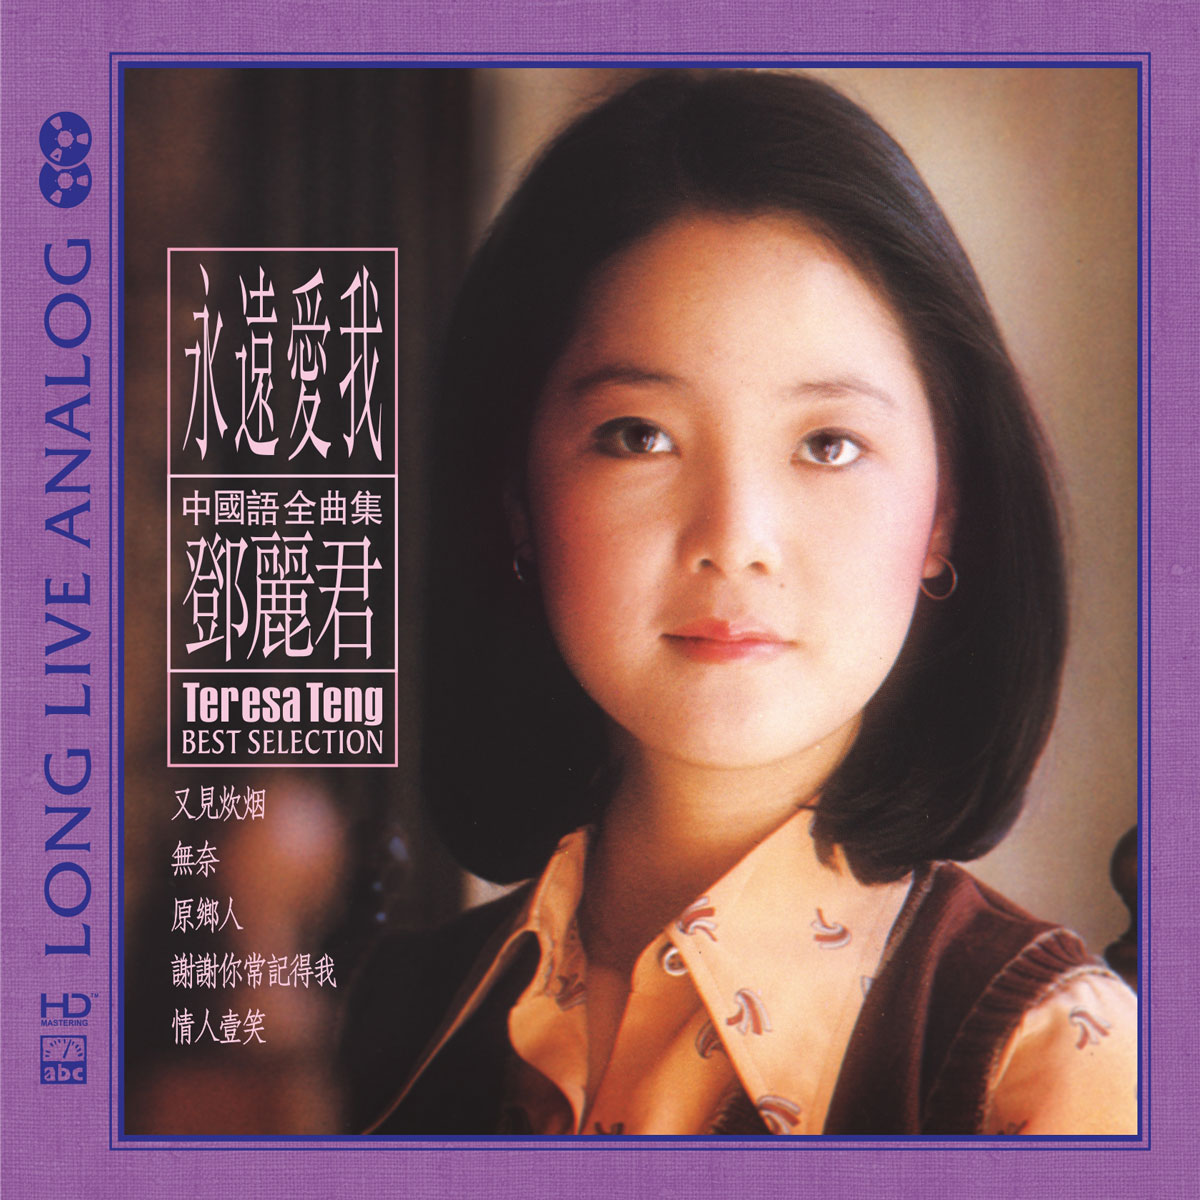 Teresa Teng Love Me Forever Chinese Music Hd